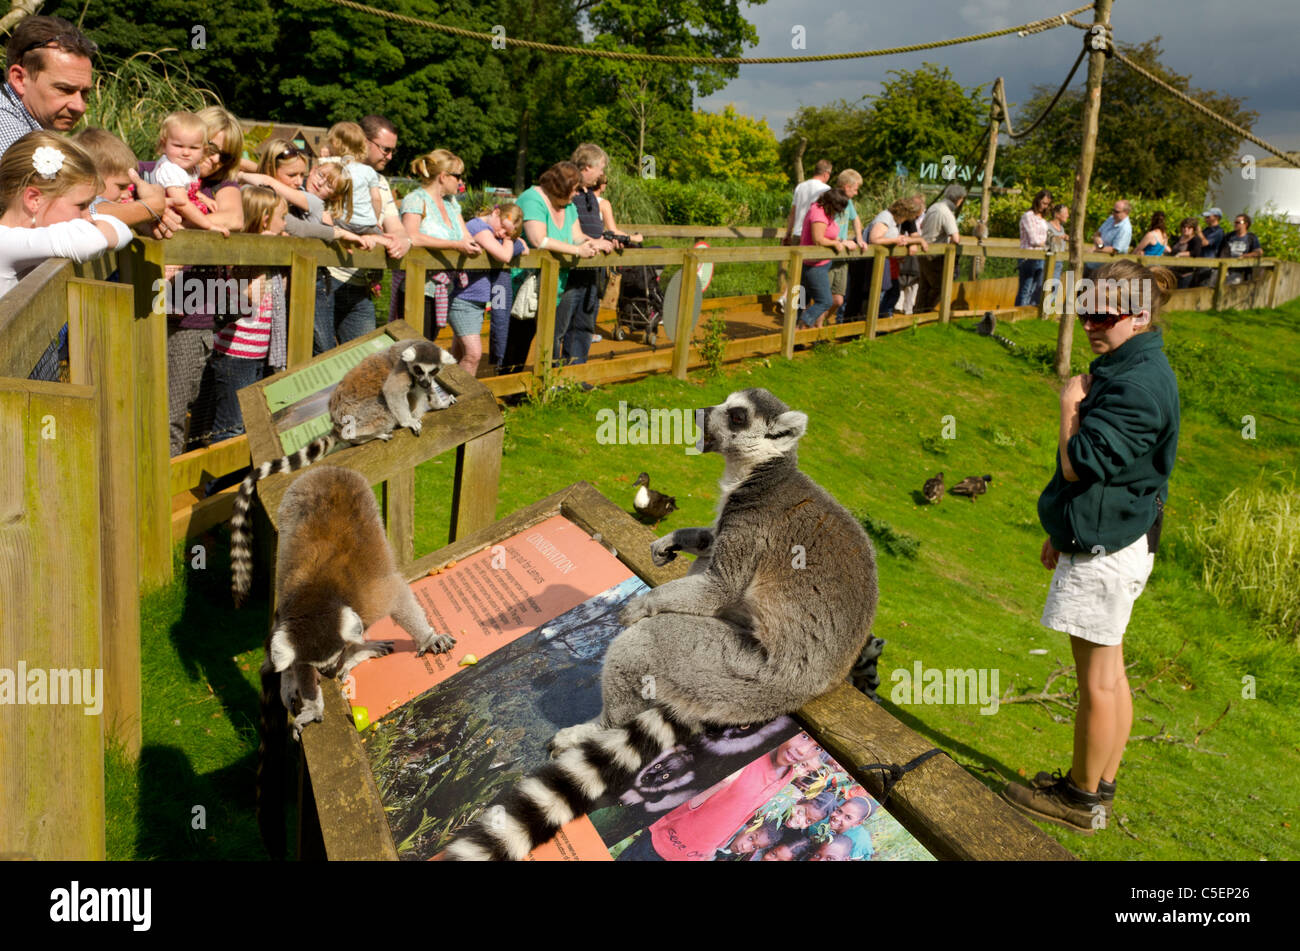 Ring-Tailed Lemurs at Whipsnade Wild Animal Park, England, Great Britain, UK - Stock Image